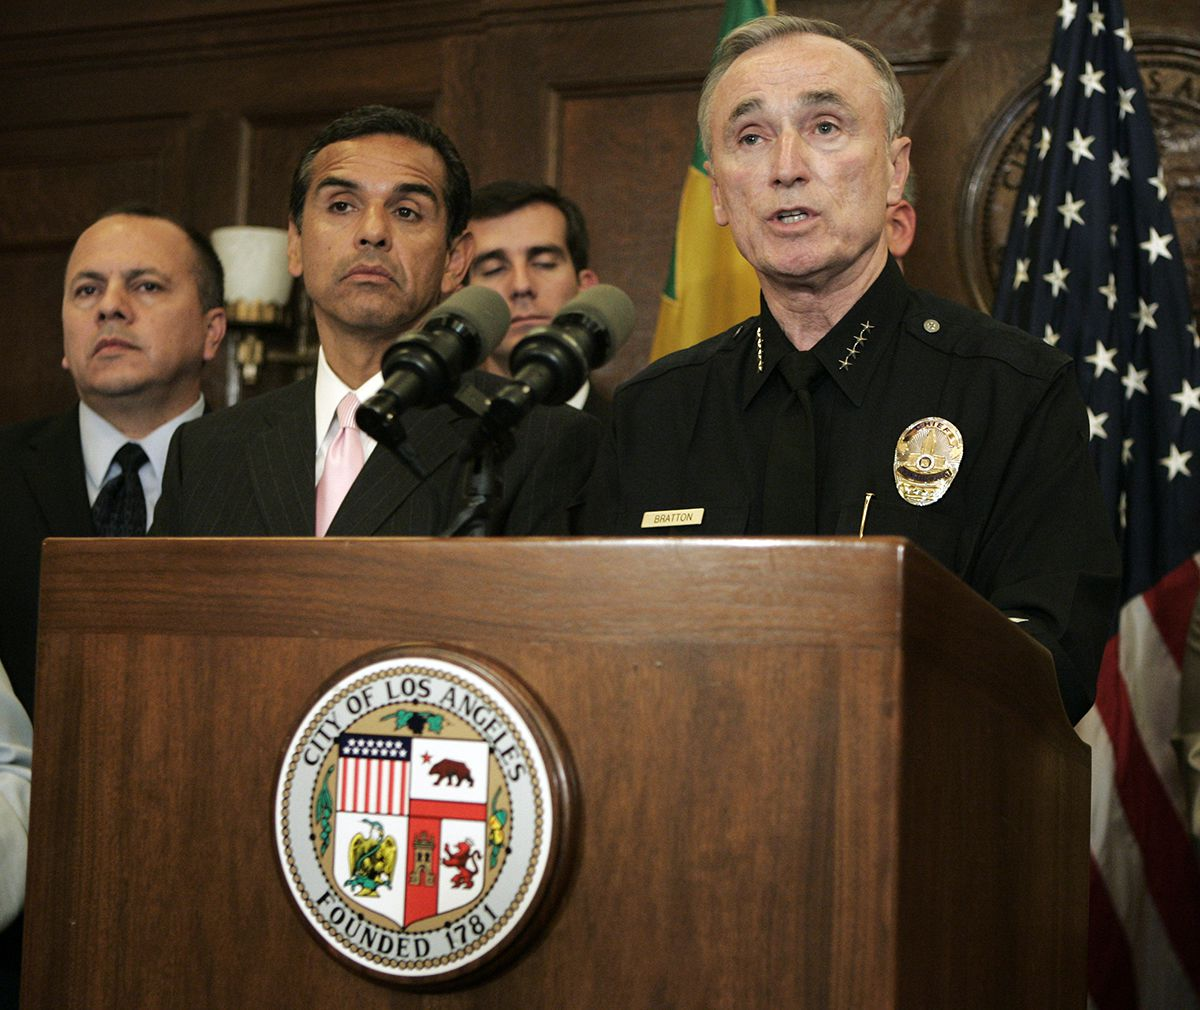 <div class='meta'><div class='origin-logo' data-origin='AP'></div><span class='caption-text' data-credit='AP Photo/Reed Saxon'>Los Angeles Police Chief William Bratton discusses issues related to the clash between LAPD officers and demonstrators, journalists and others on Friday, May 4, 2007.</span></div>